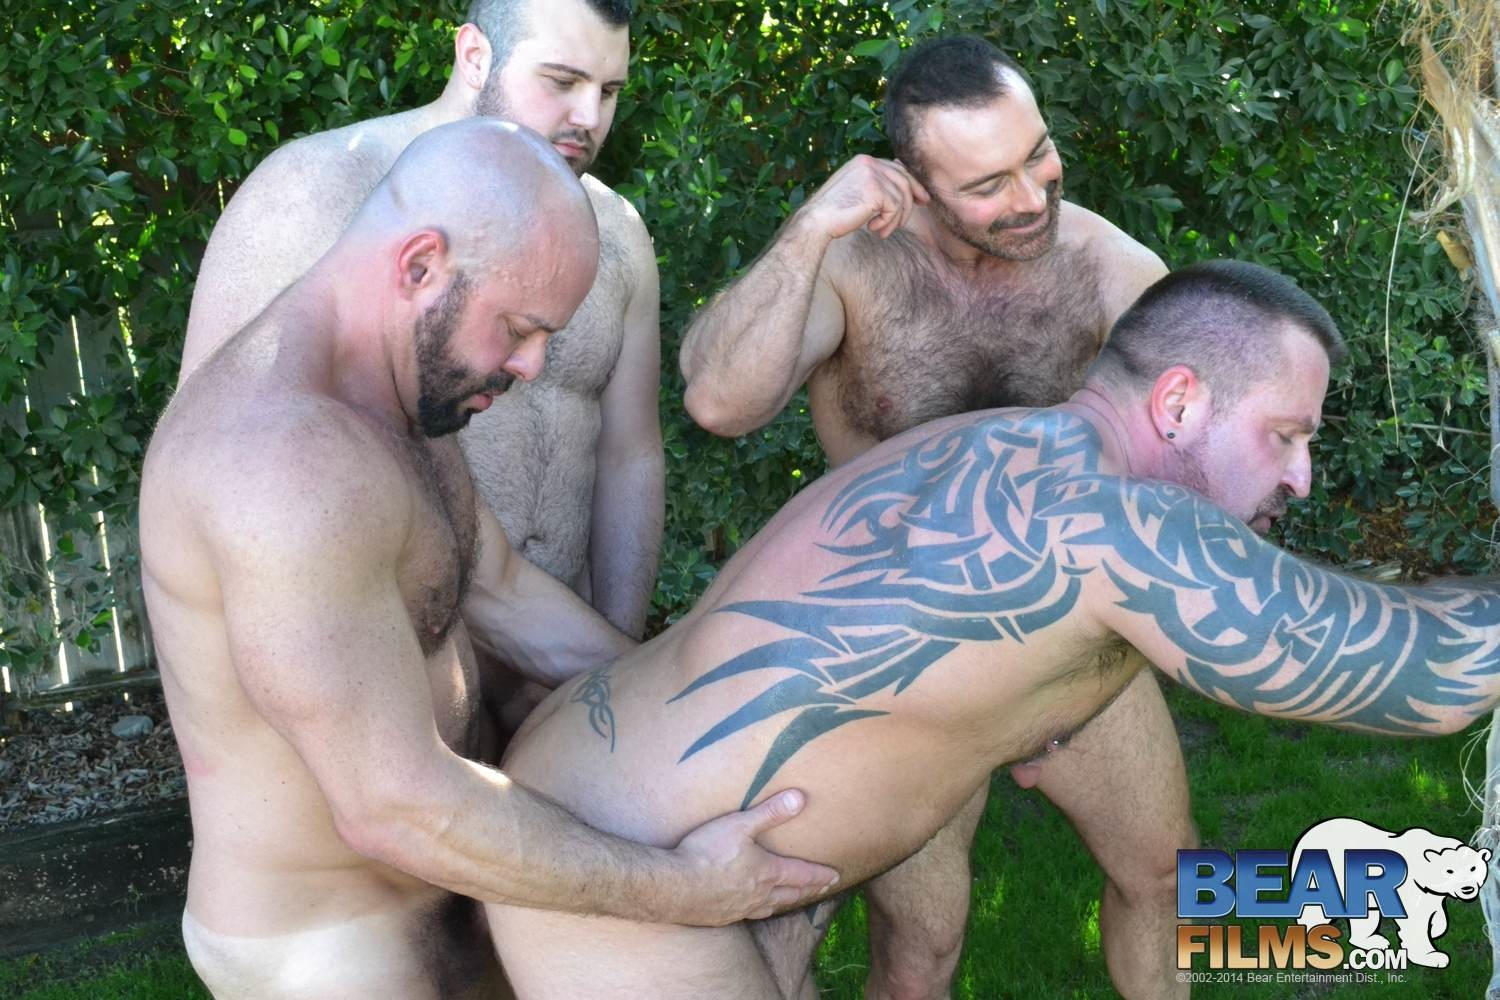 Marc angelo and wade cashen bear films gay porn tube-3035